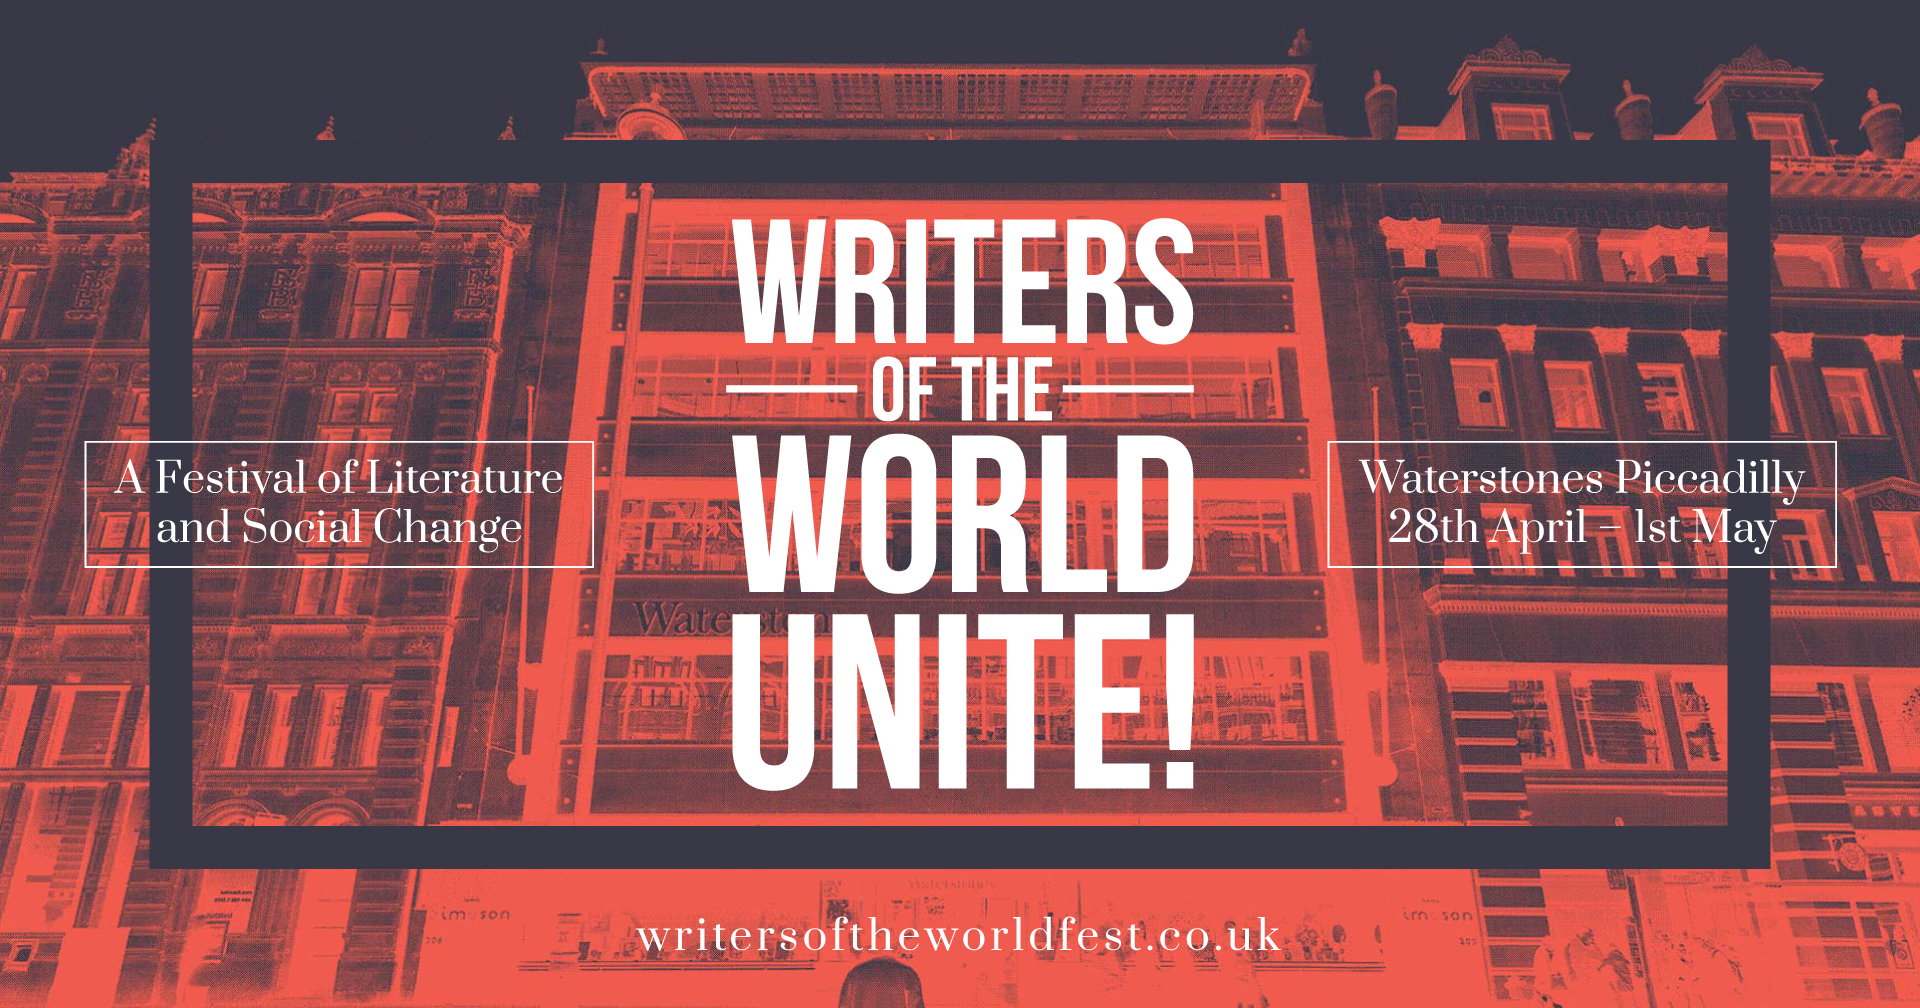 Writers of the World Unite!